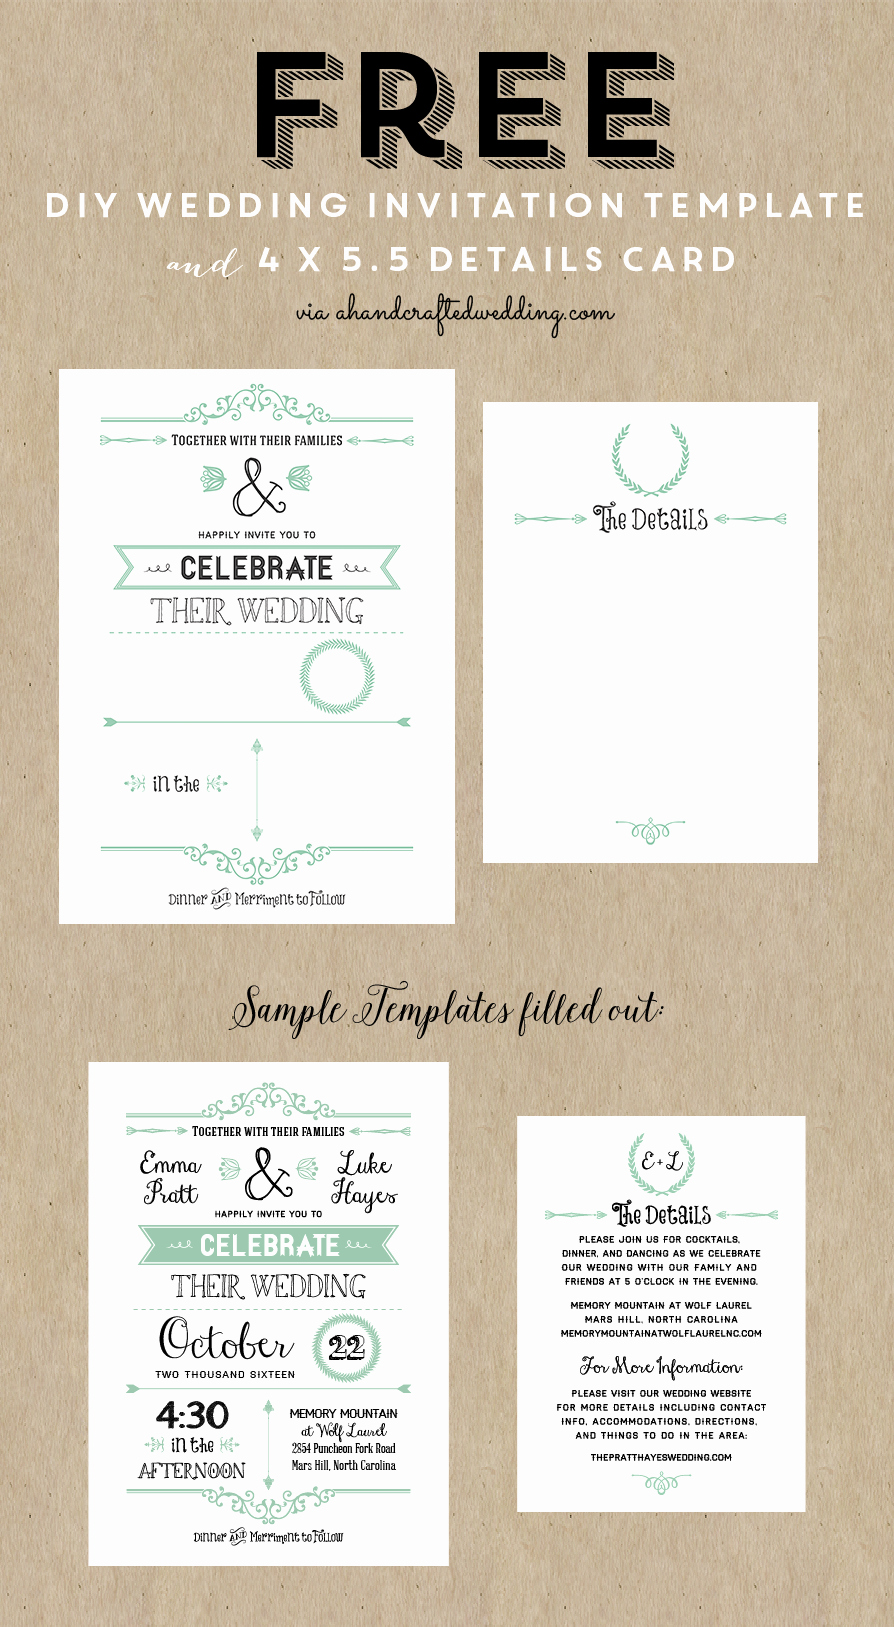 Best Wedding Invitation Cards Designs Luxury Best 25 Free Wedding Invitation Templates Ideas On